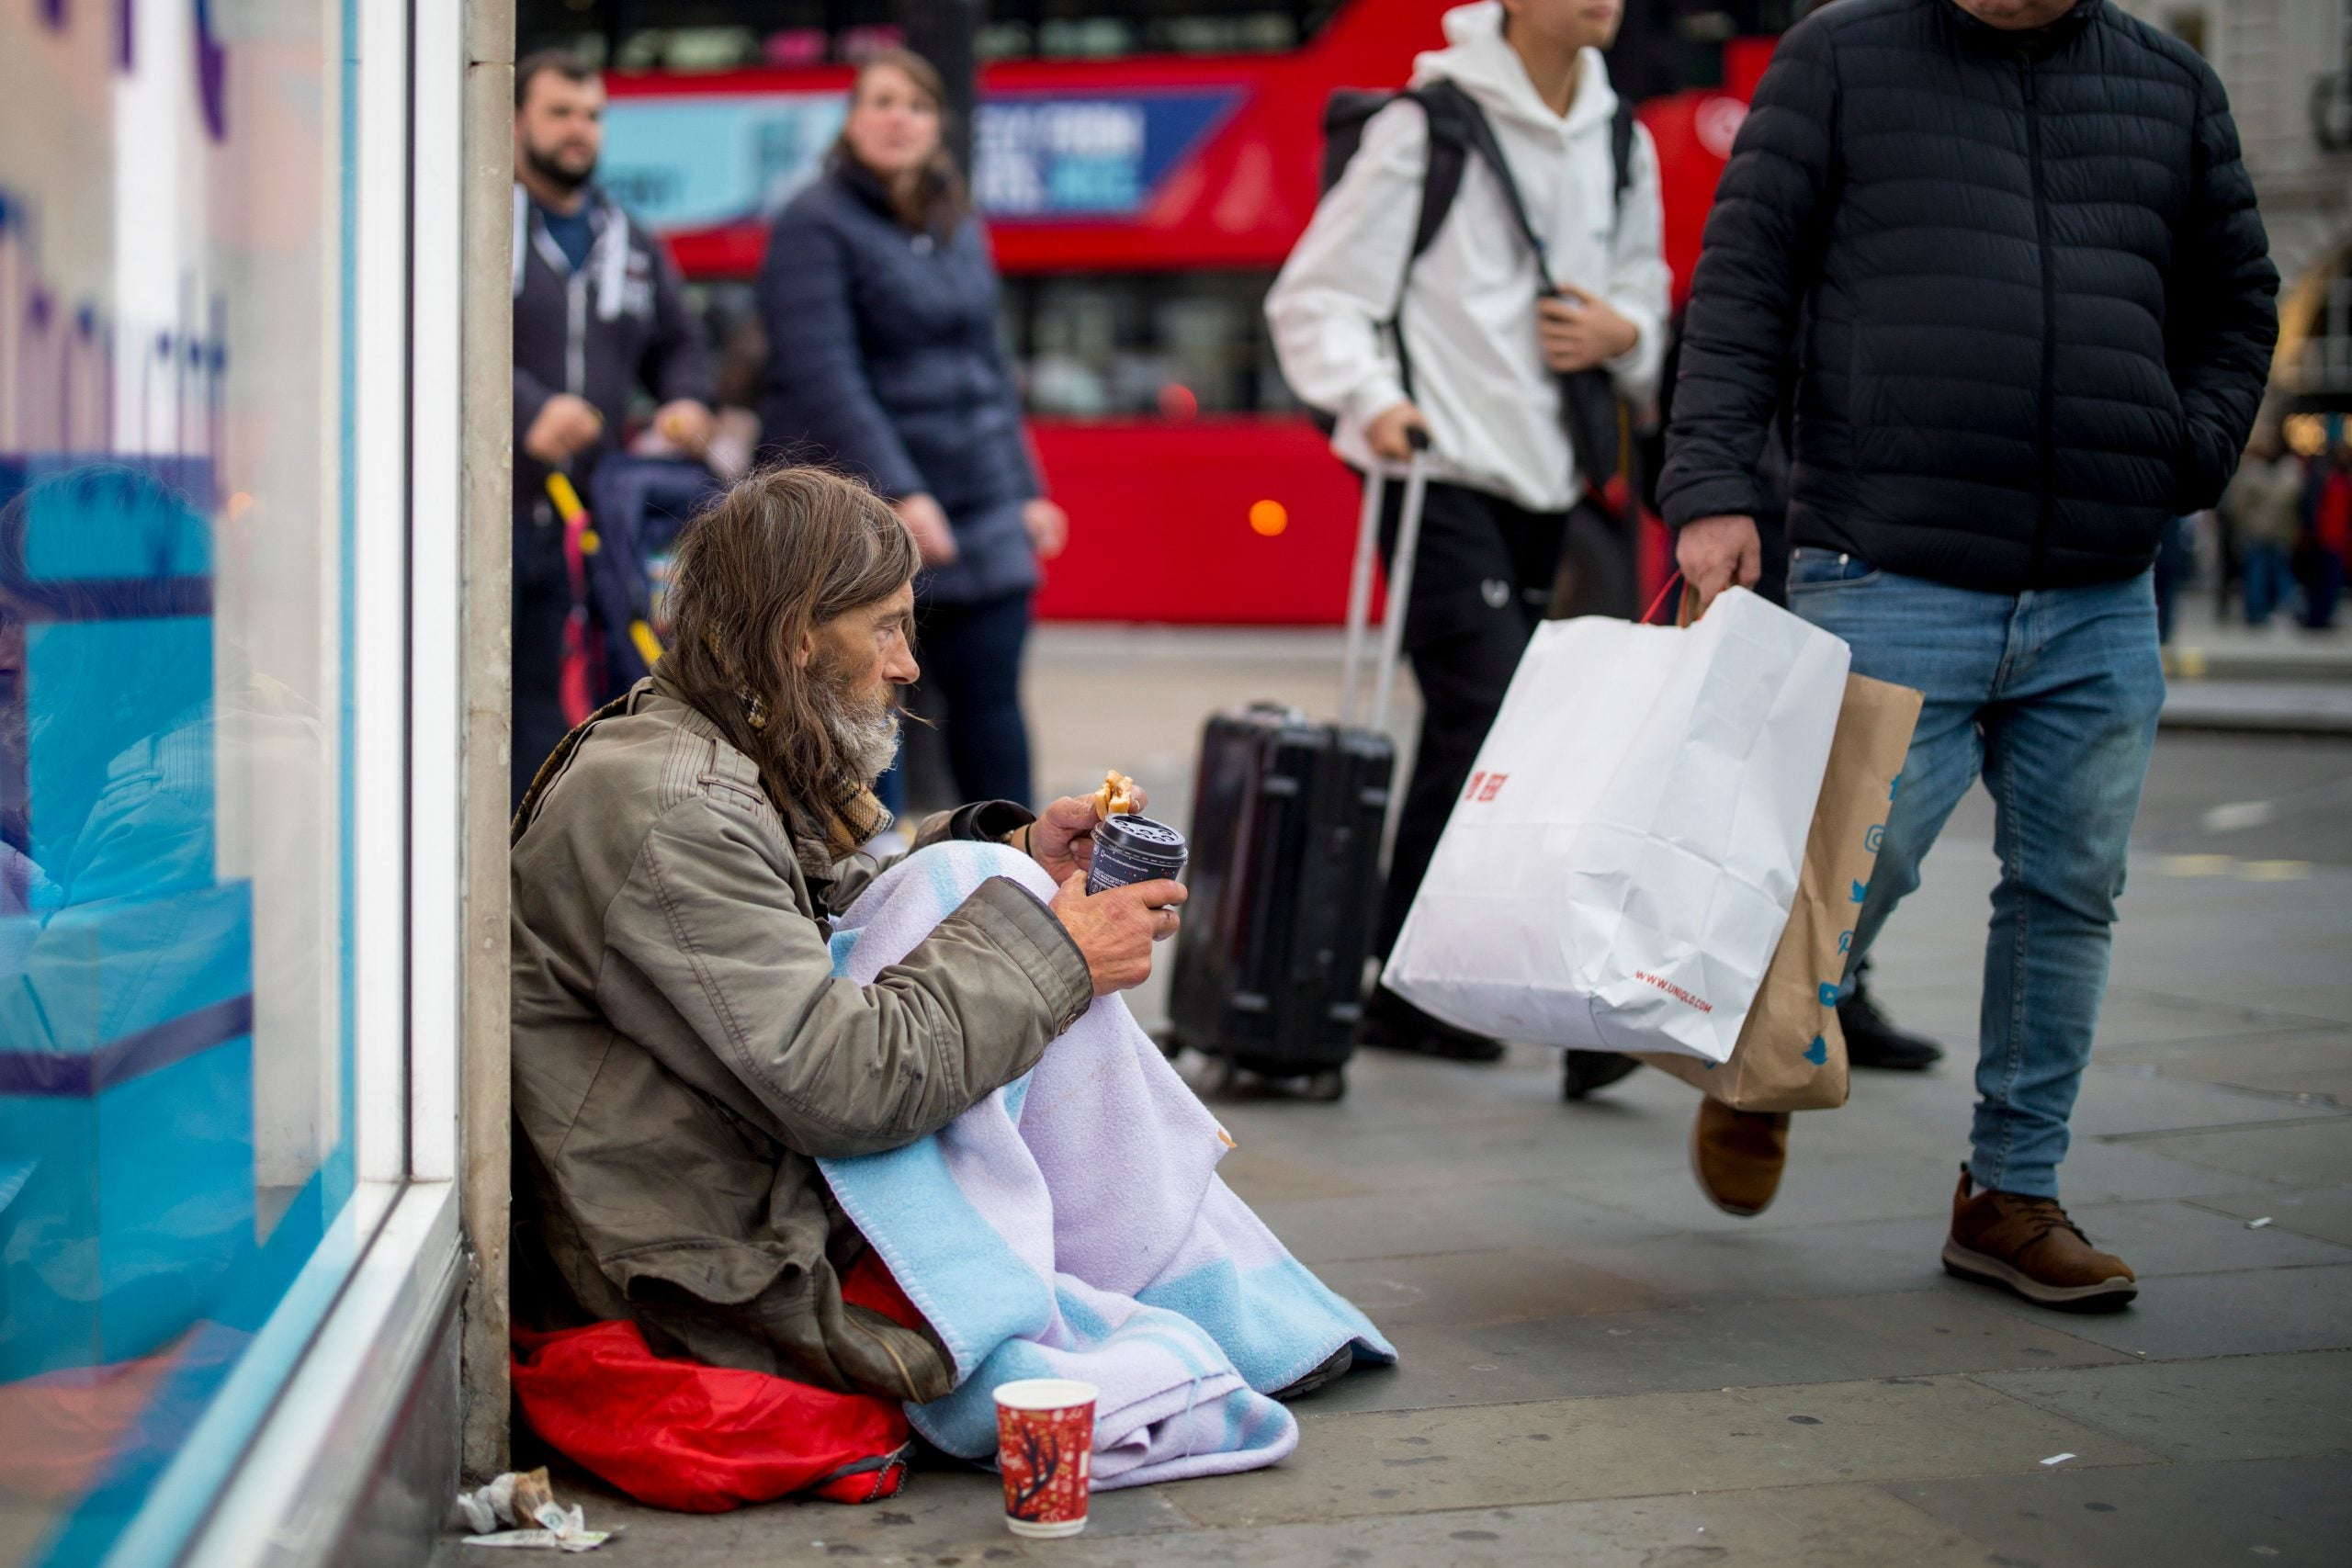 What we want: to prioritise tackling inequality